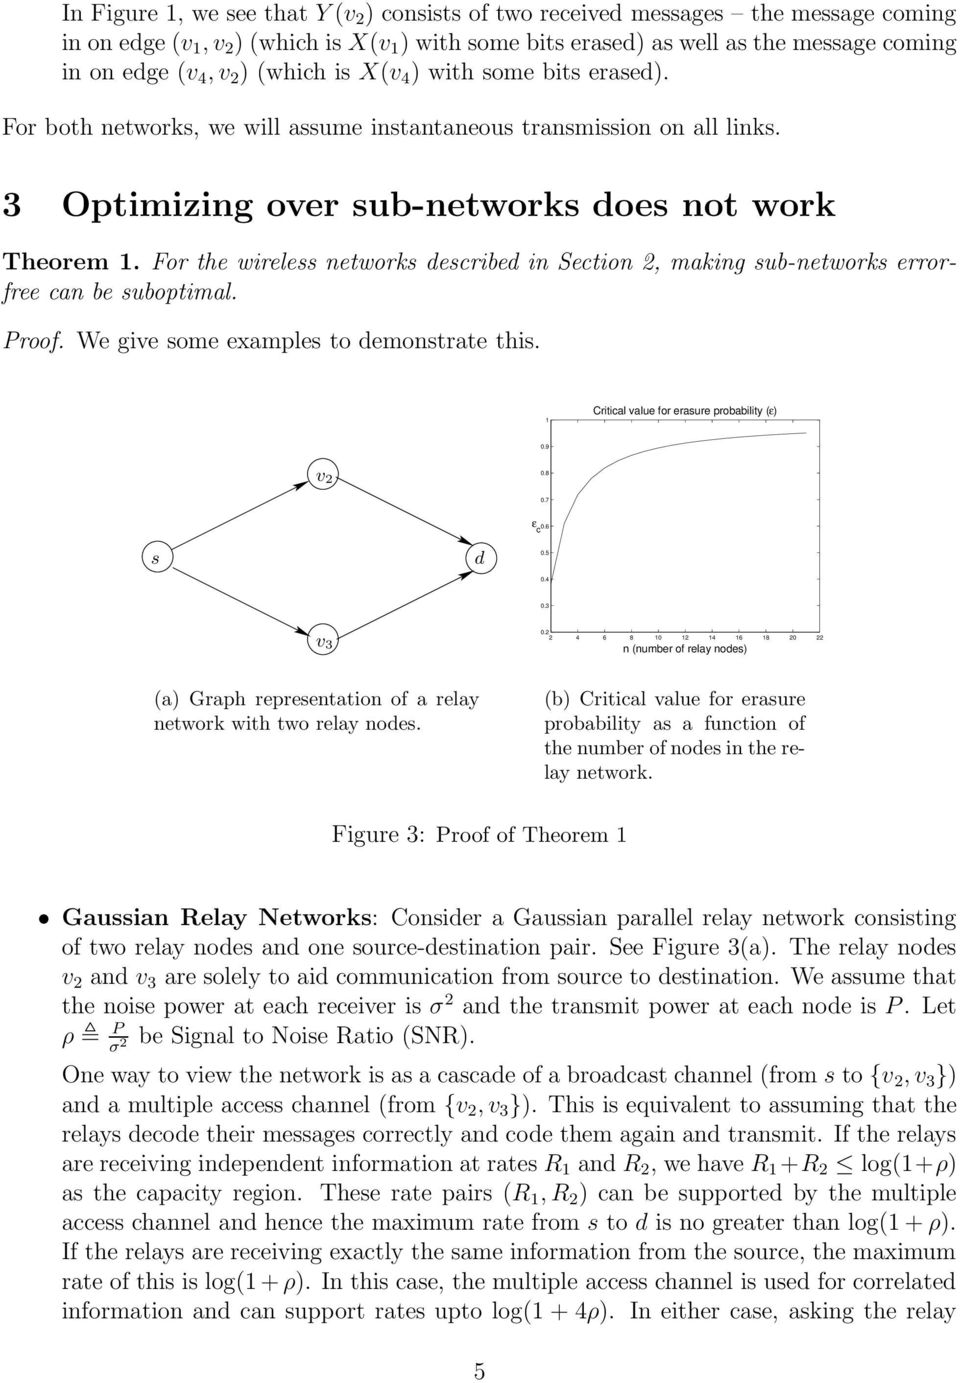 For the wireless networks described in Section 2, making sub-networks errorfree can be suboptimal. Proof. We give some examples to demonstrate this. 1 Critical value for erasure probability (ε) 0.